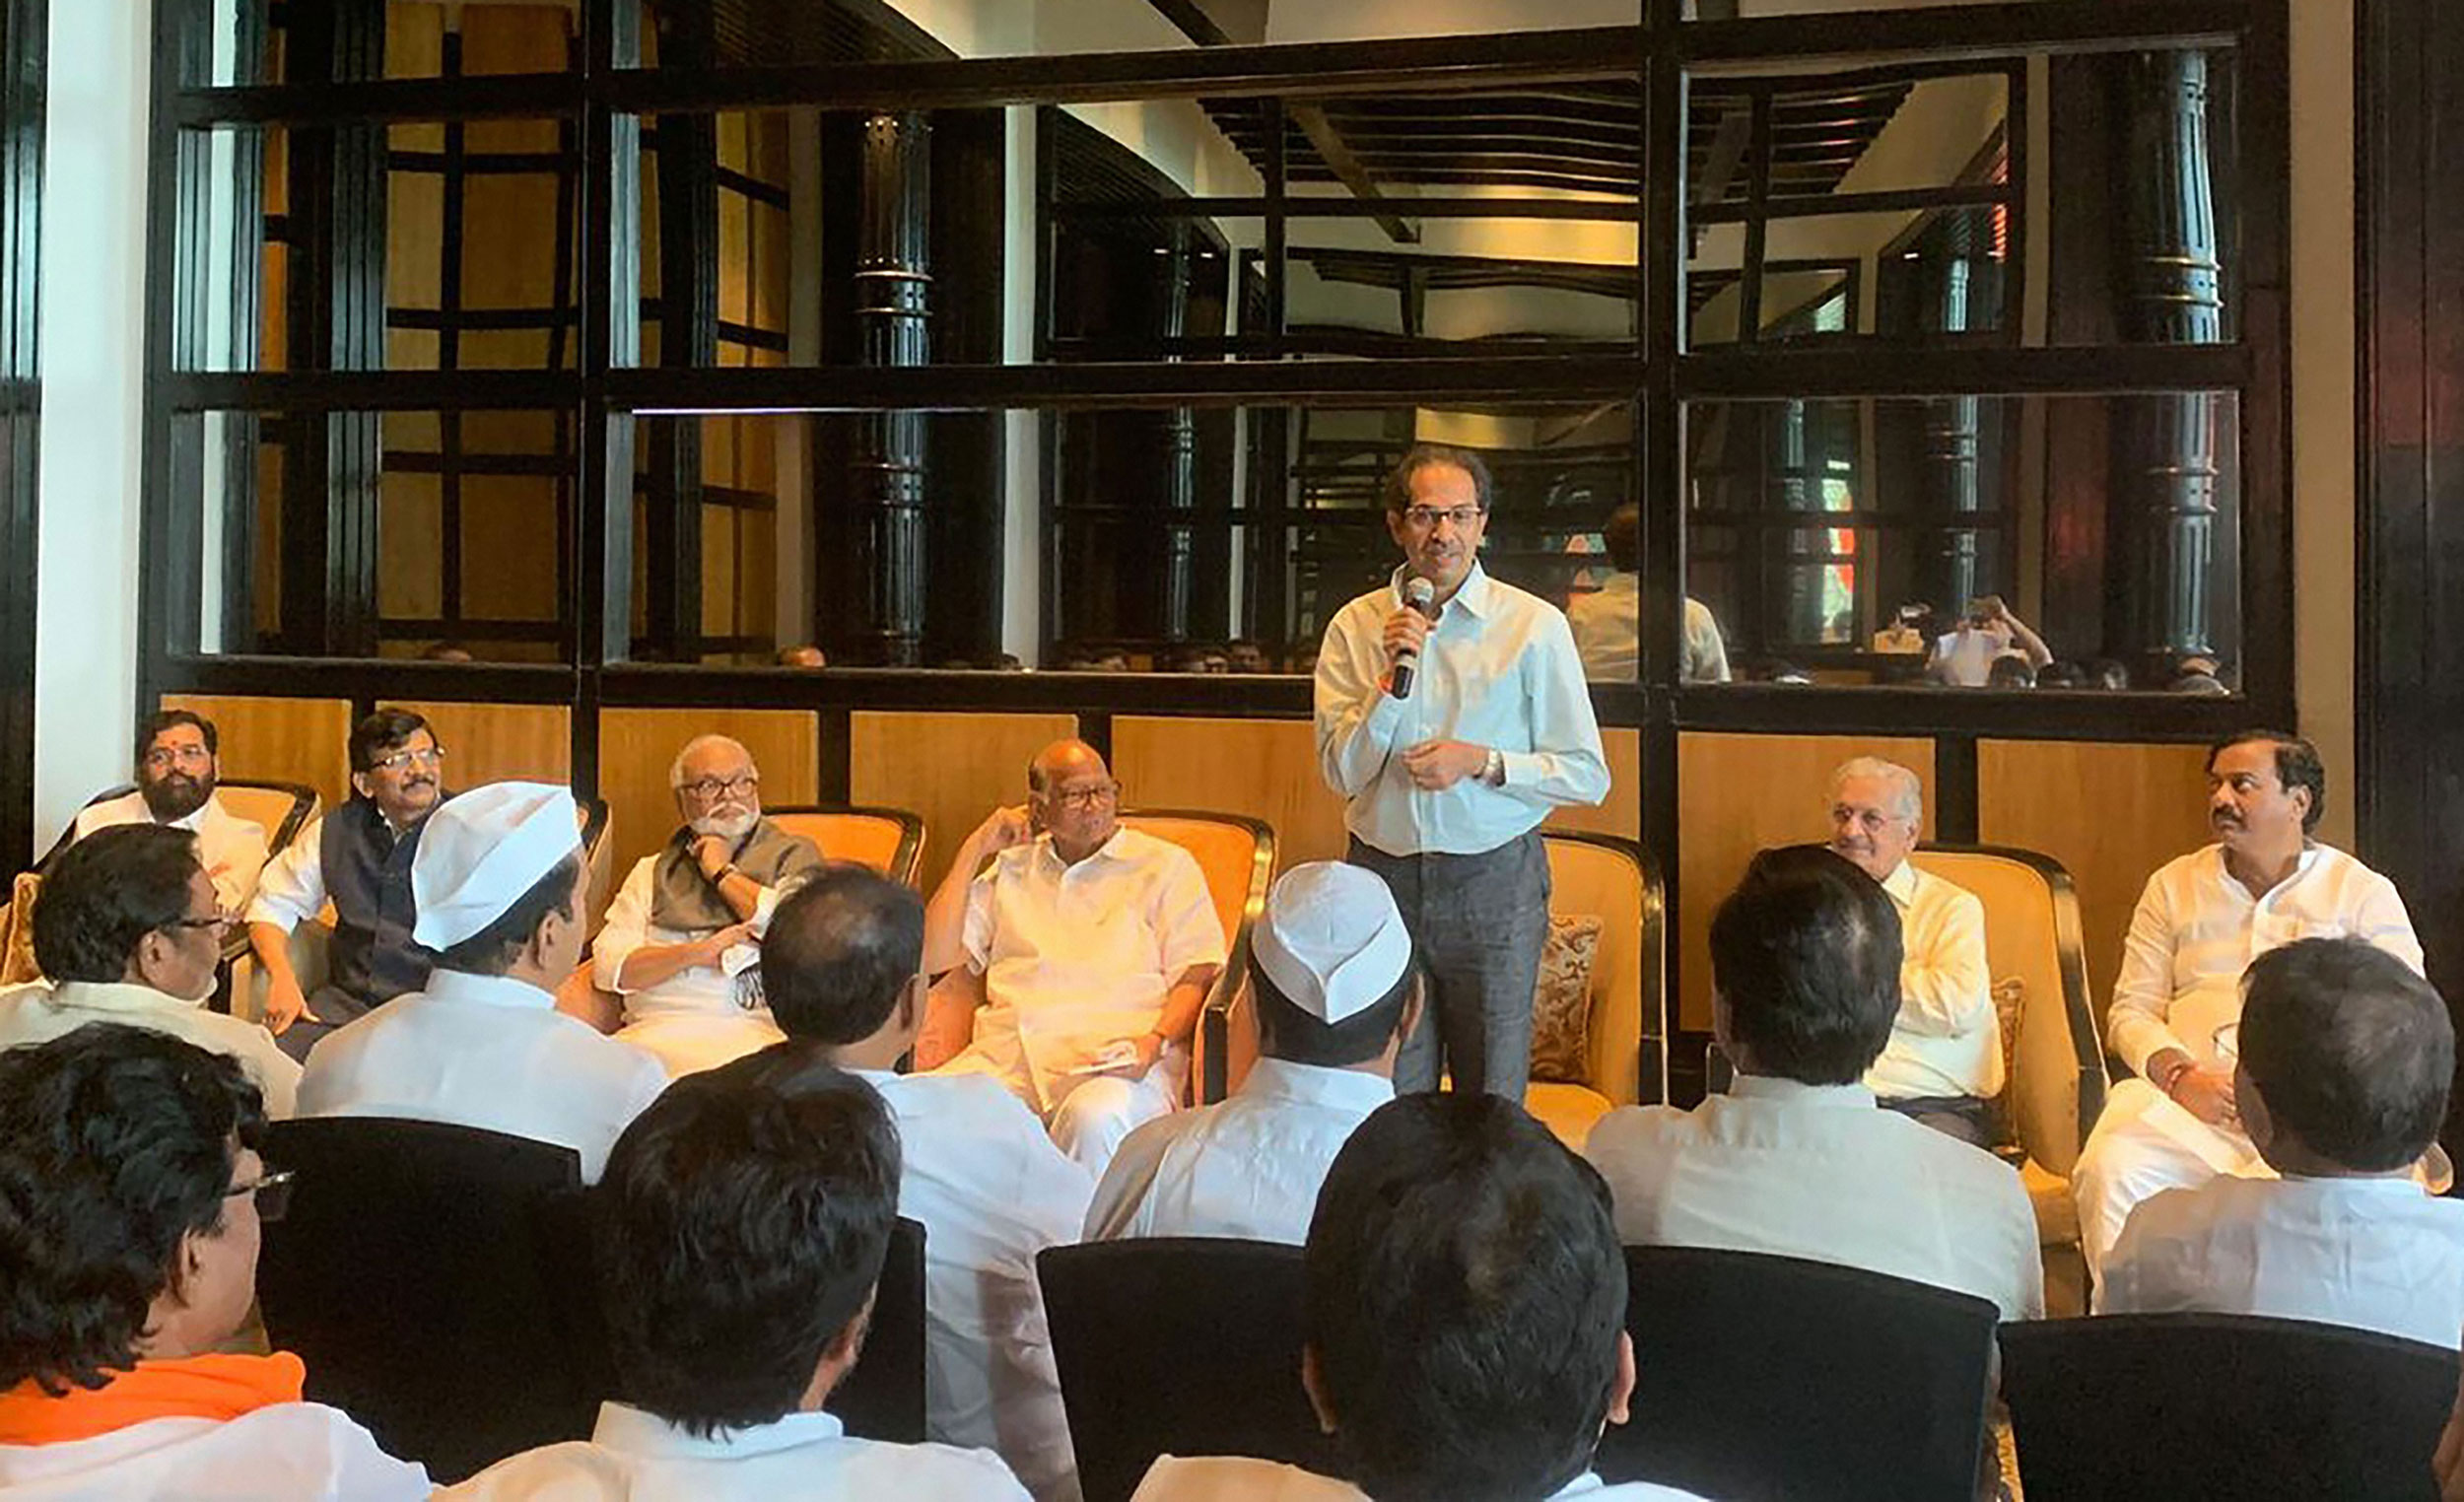 NCP party meeting, chaired by Sharad Pawar, underway at Hotel Renaissance, Mumbai, on Sunday. Shiv Sena Chief Uddhav Thackeray and Sanjay Raut were also present. In the video, MLA Jitendra Awhad and NCP workers are seen asking the policemen what business they have at the hotel in Powai.